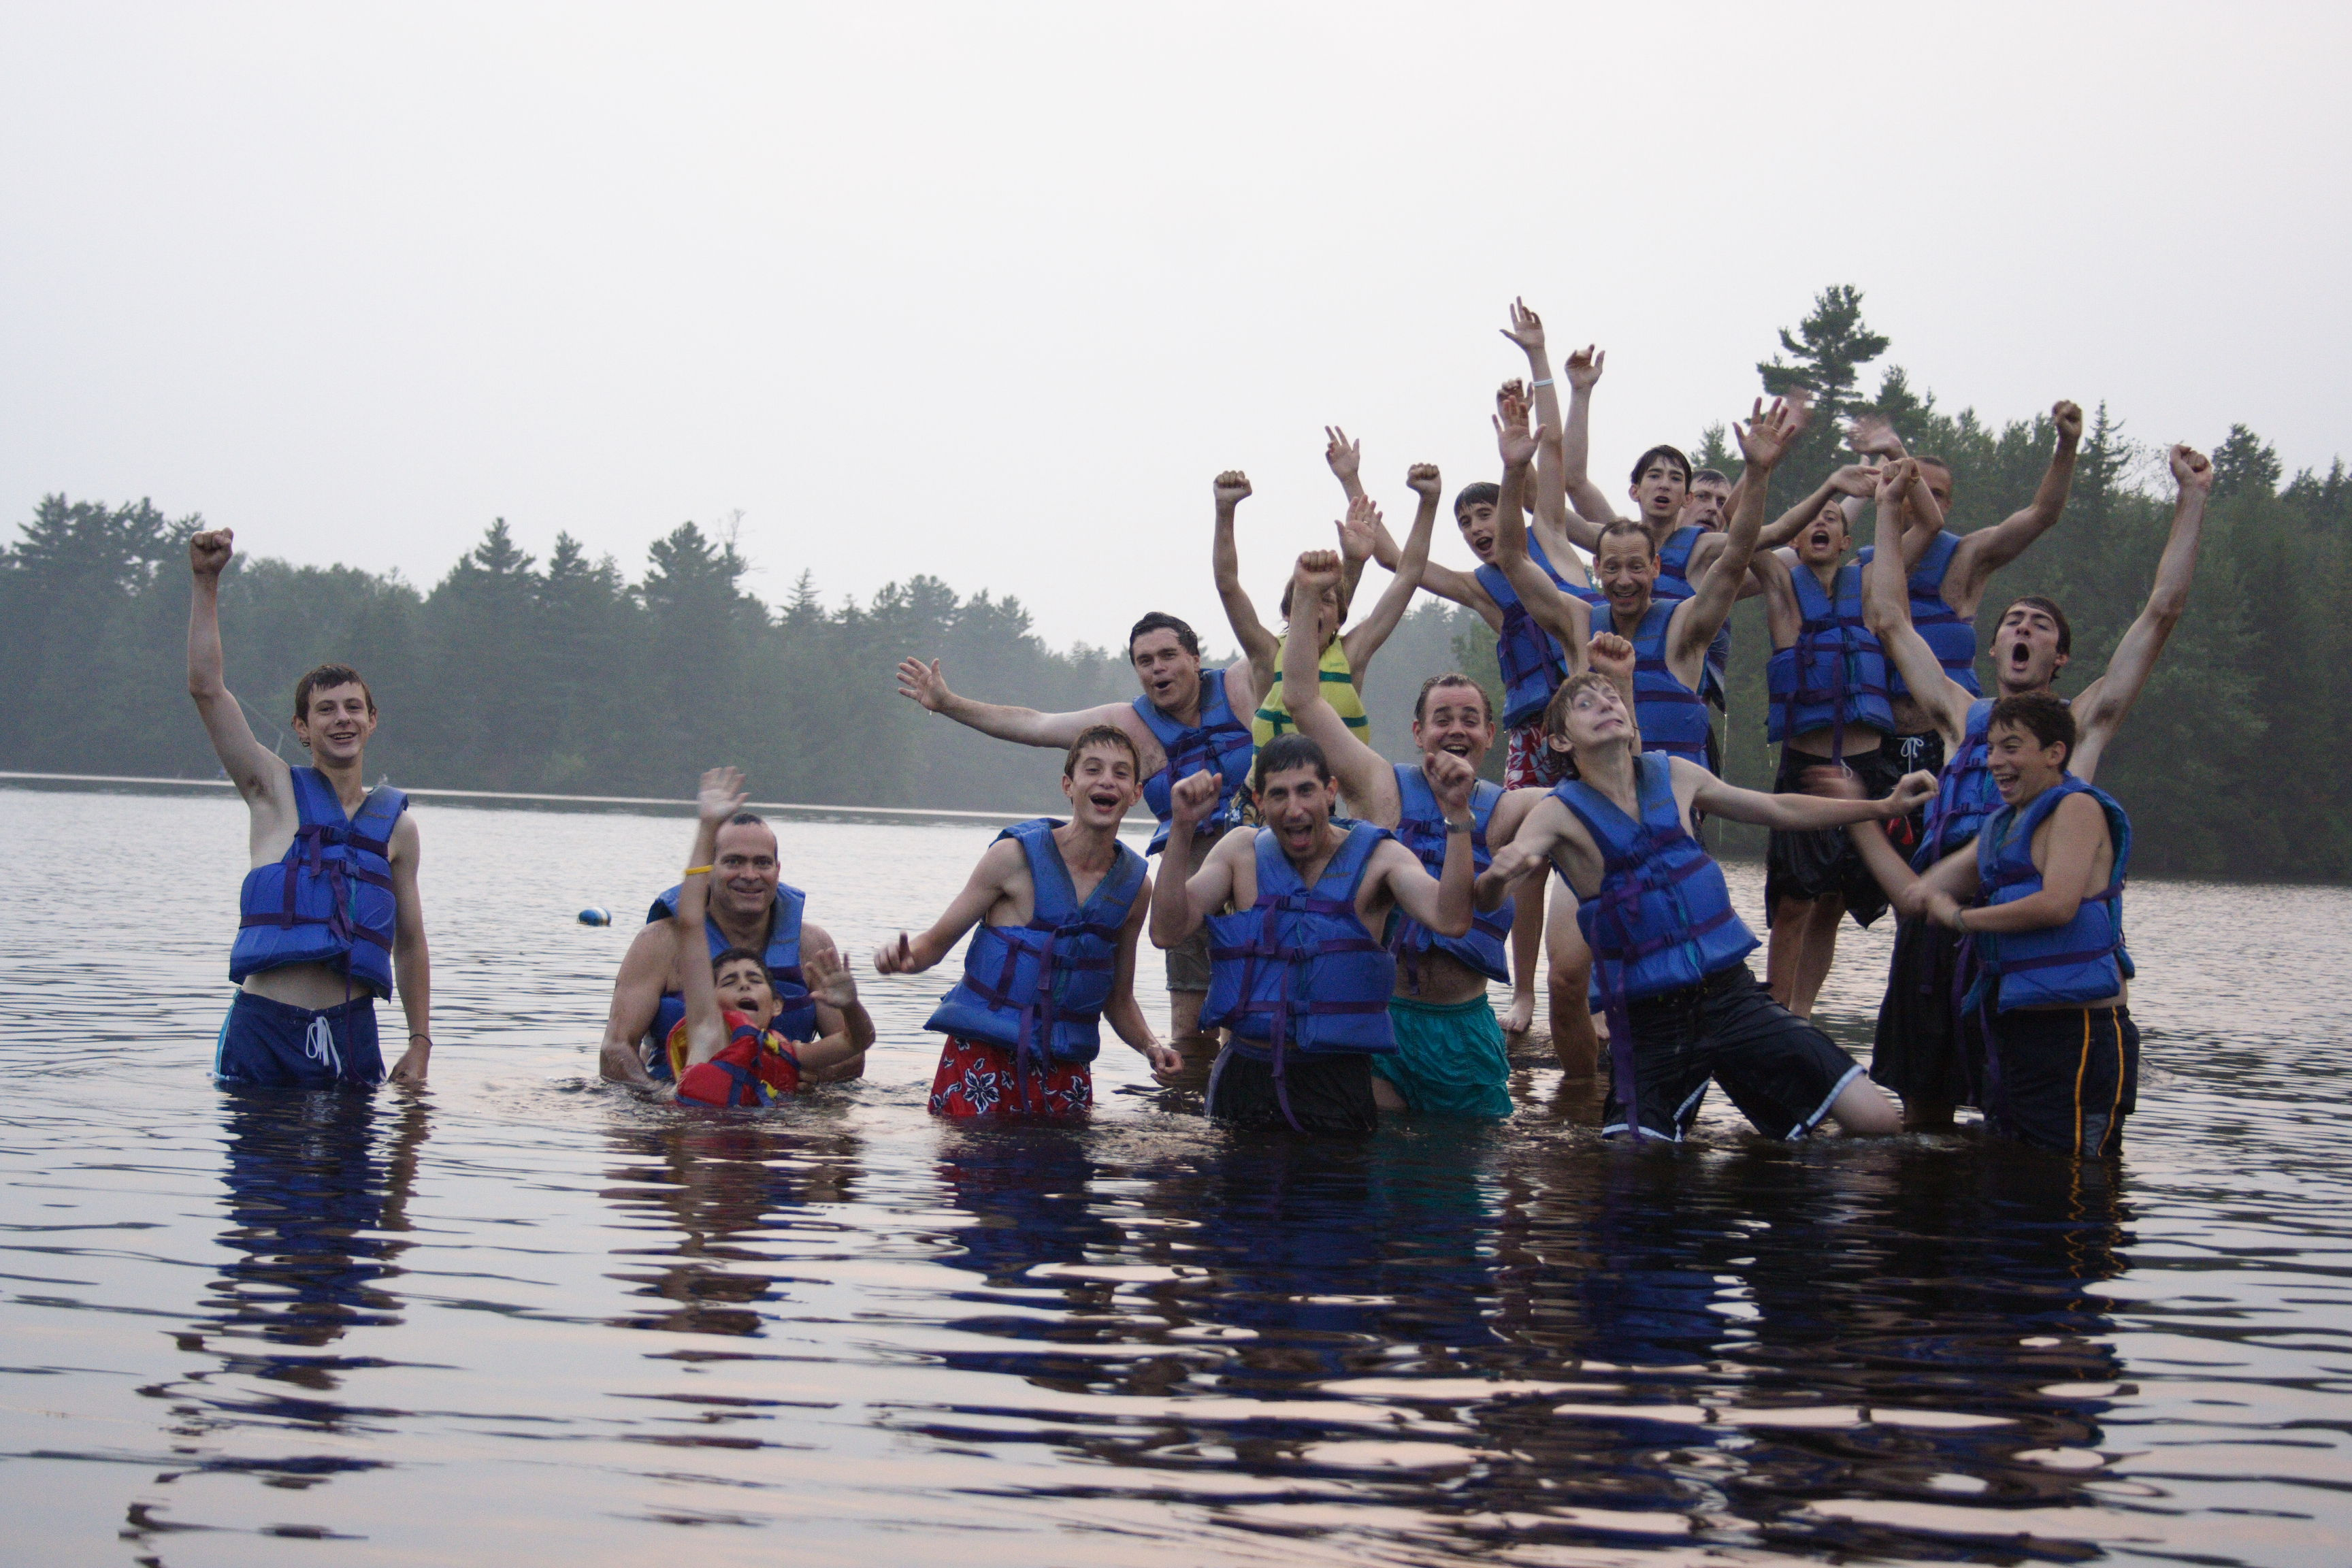 A group of people in the water